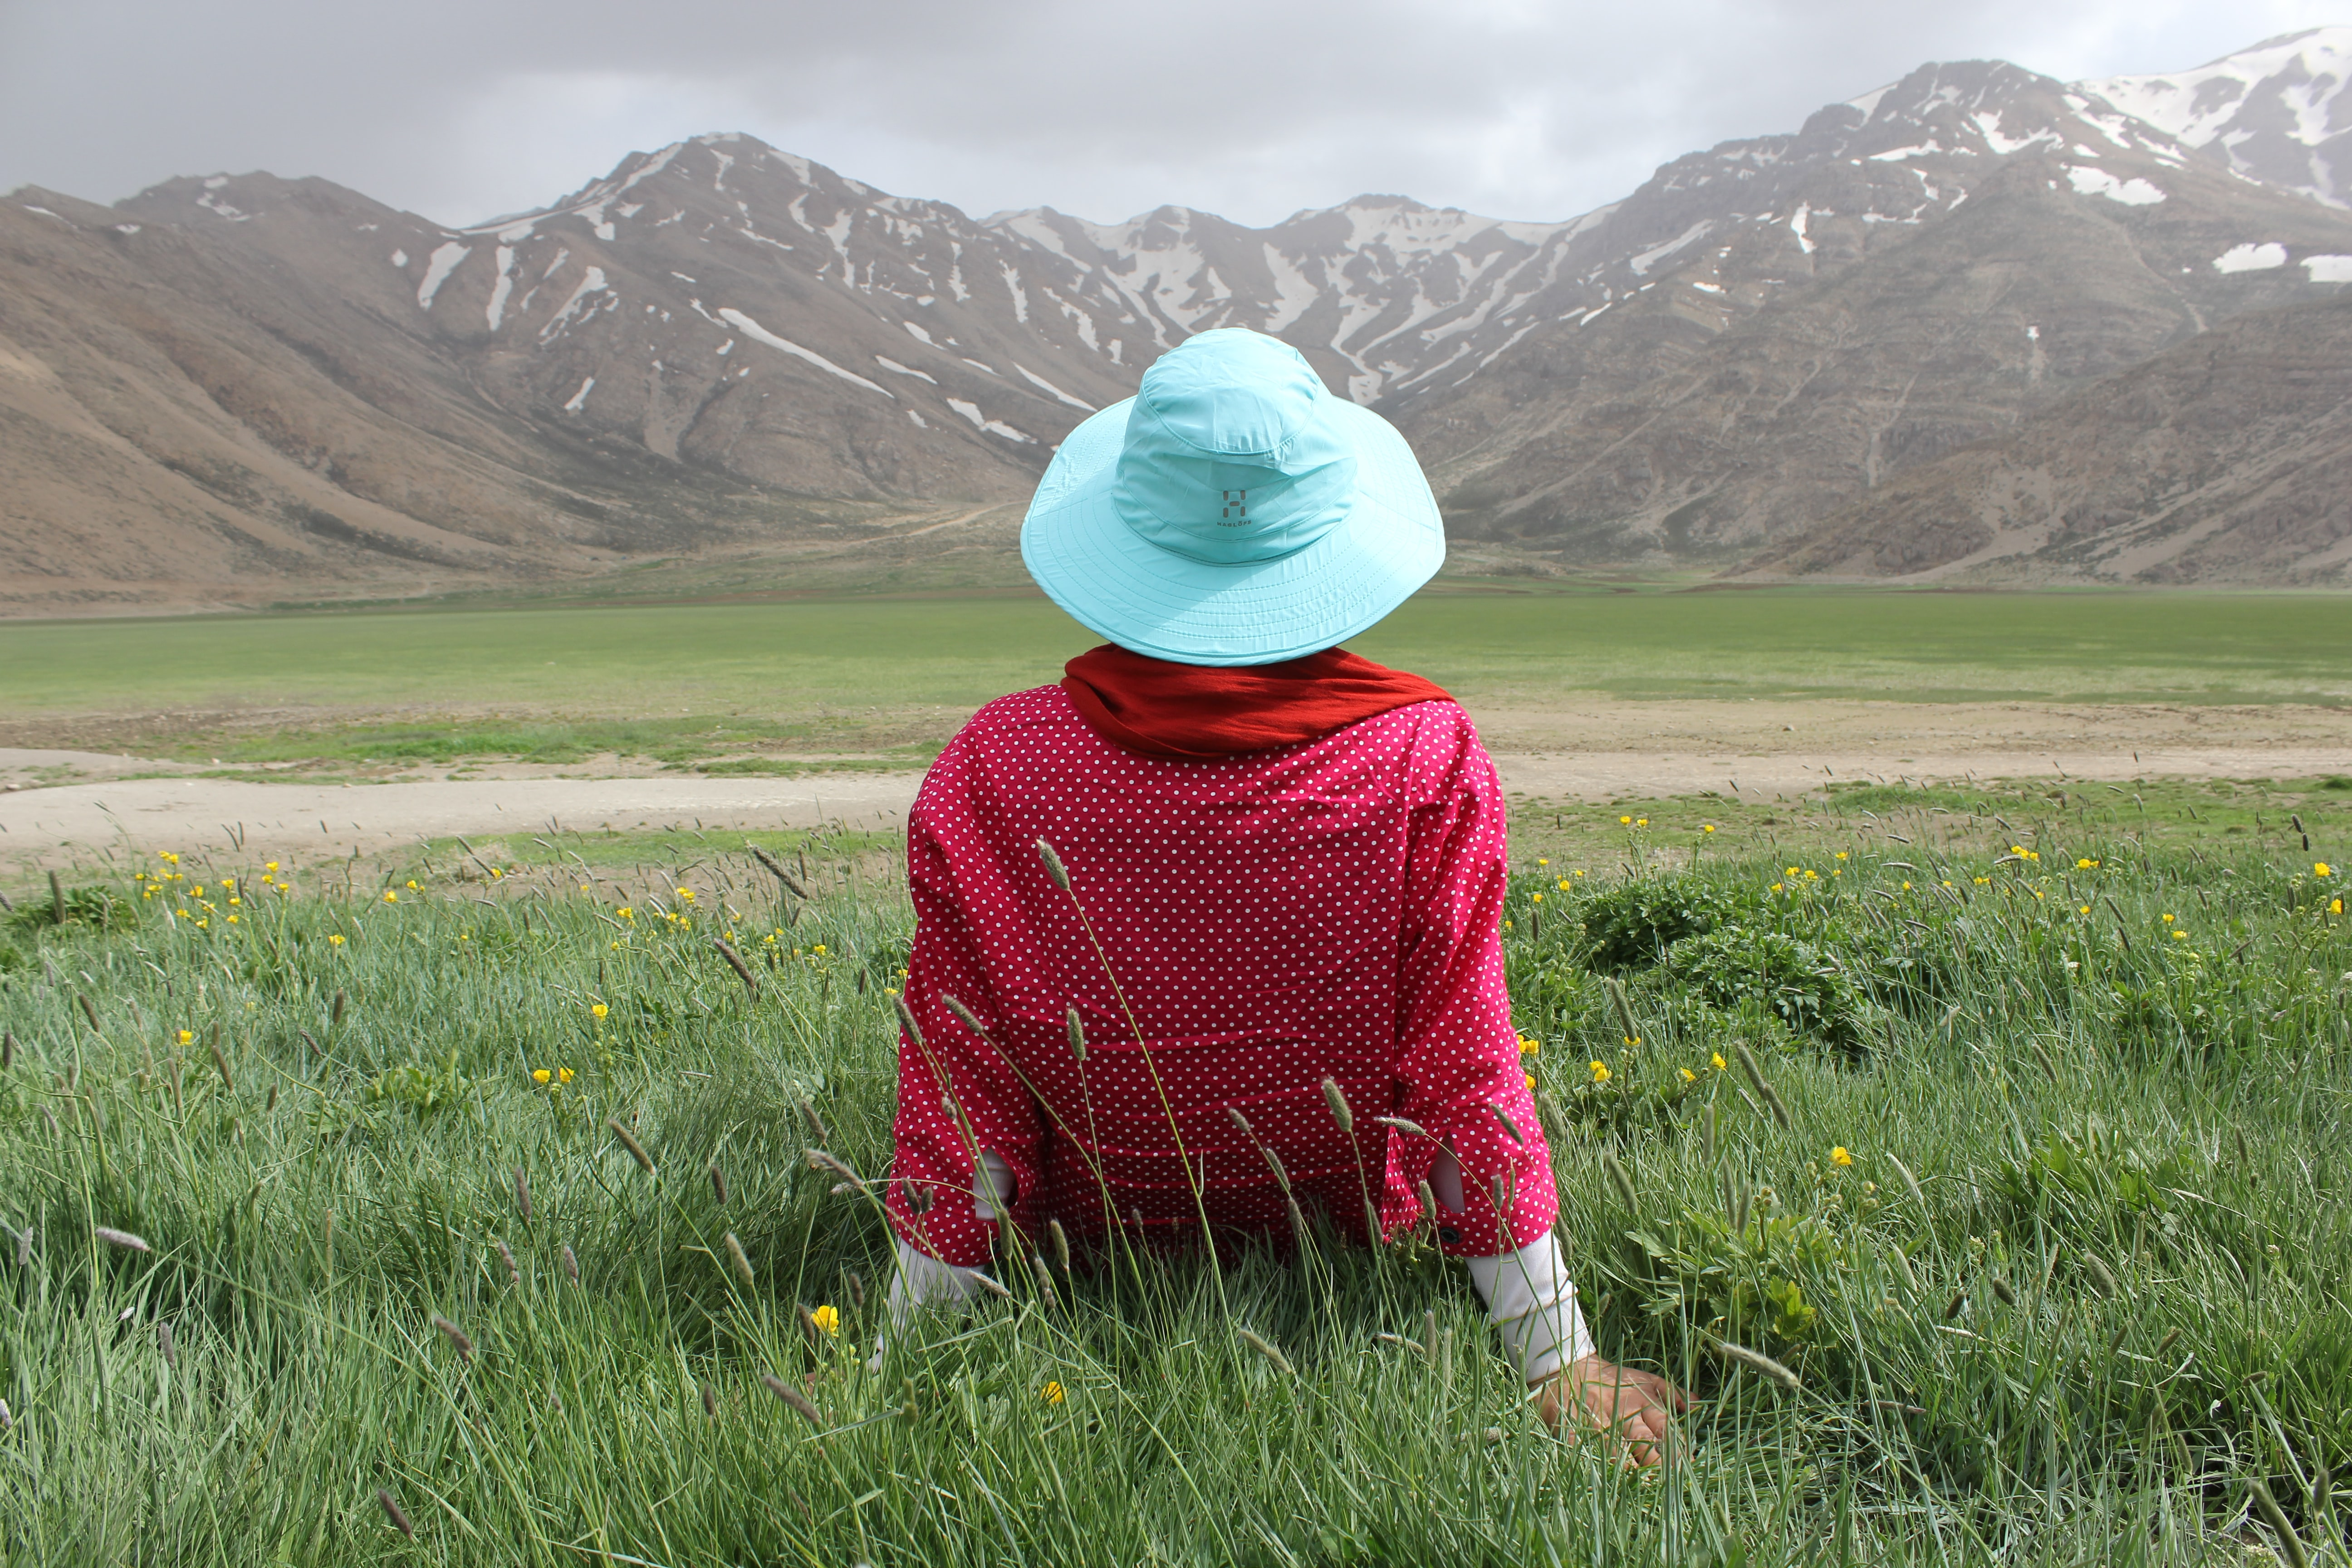 Person in a red shirt and blue hat relaxing in grass near mountains